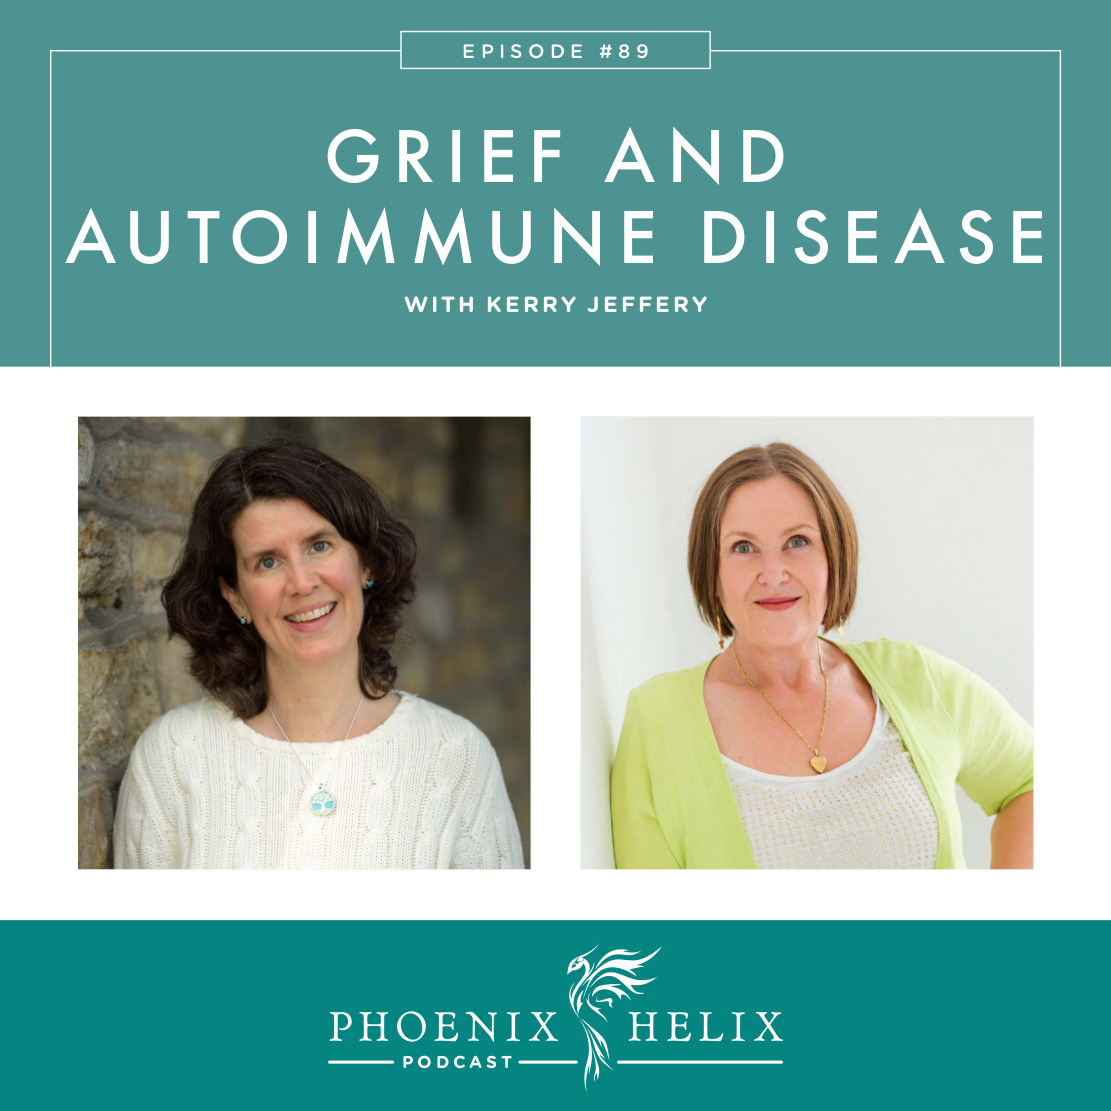 Grief and Autoimmune Disease with Kerry Jeffery | Phoenix Helix Podcast